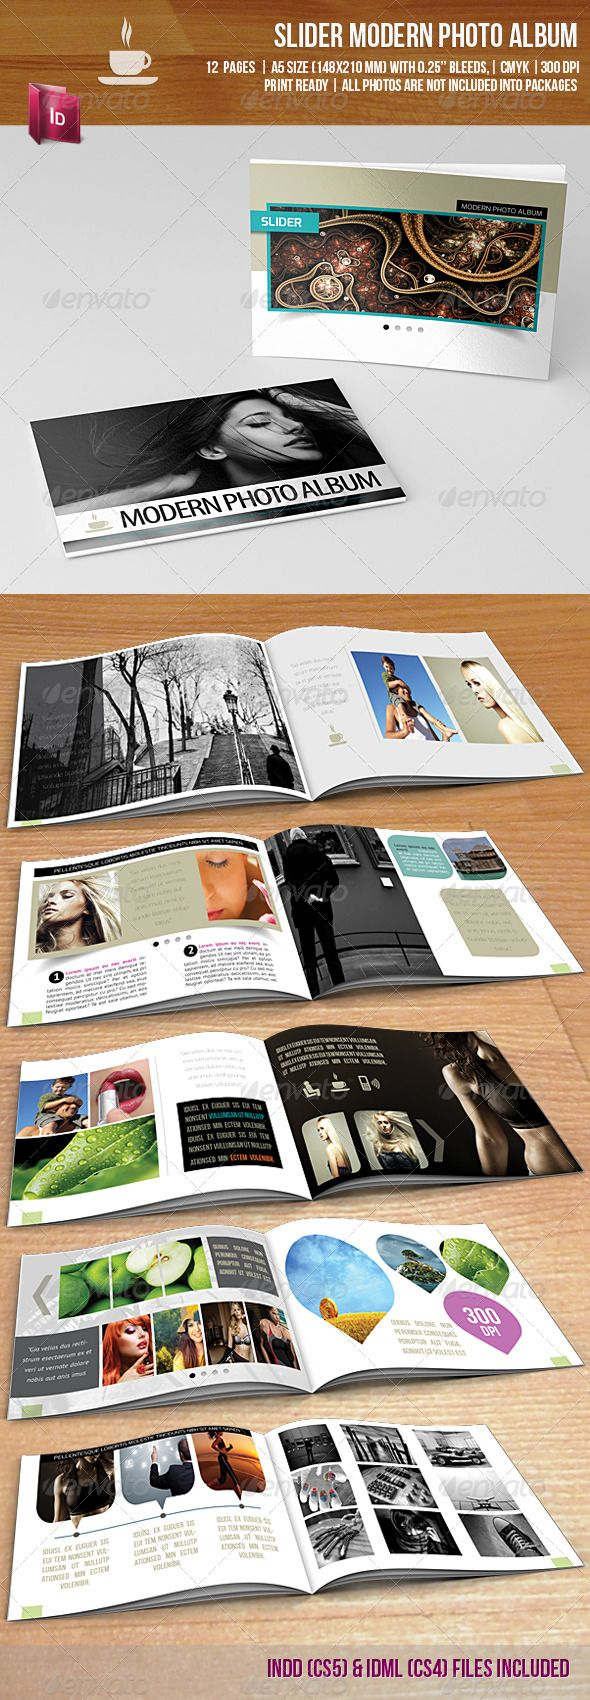 Photo Album Design Basics For Everyday Use - sleek layout design basics